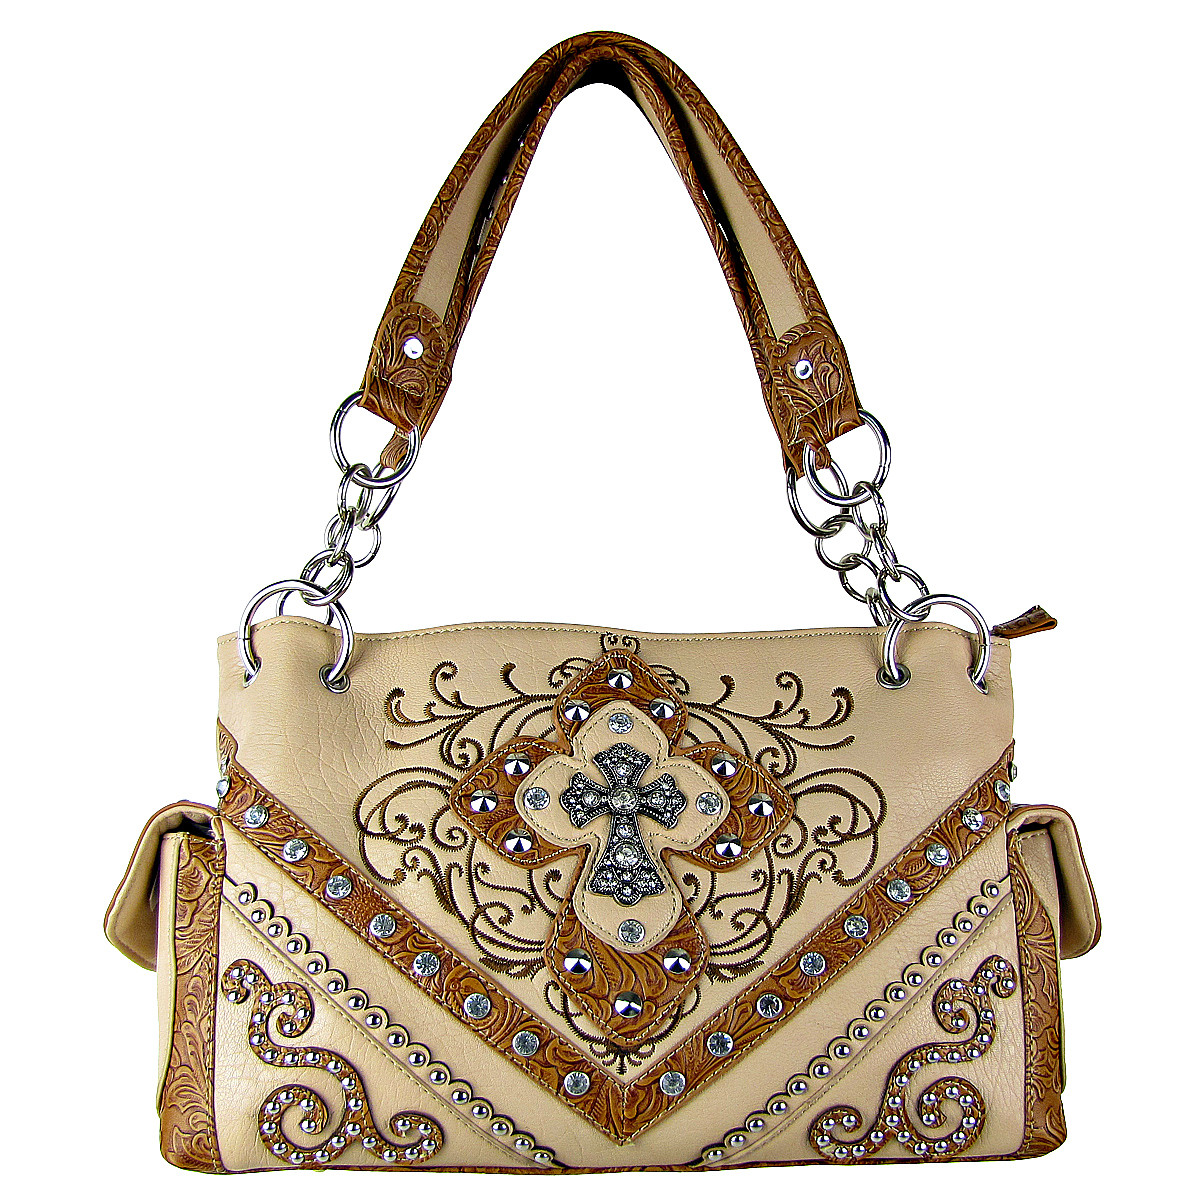 BEIGE STUDDED RHINESTONE STITCHED CROSS LOOK SHOULDER HANDBAG BEIGE STUDDED RHINESTONE STITCHED CROSS LOOK SHOULDER HANDBAG HB1-HL12980BEI